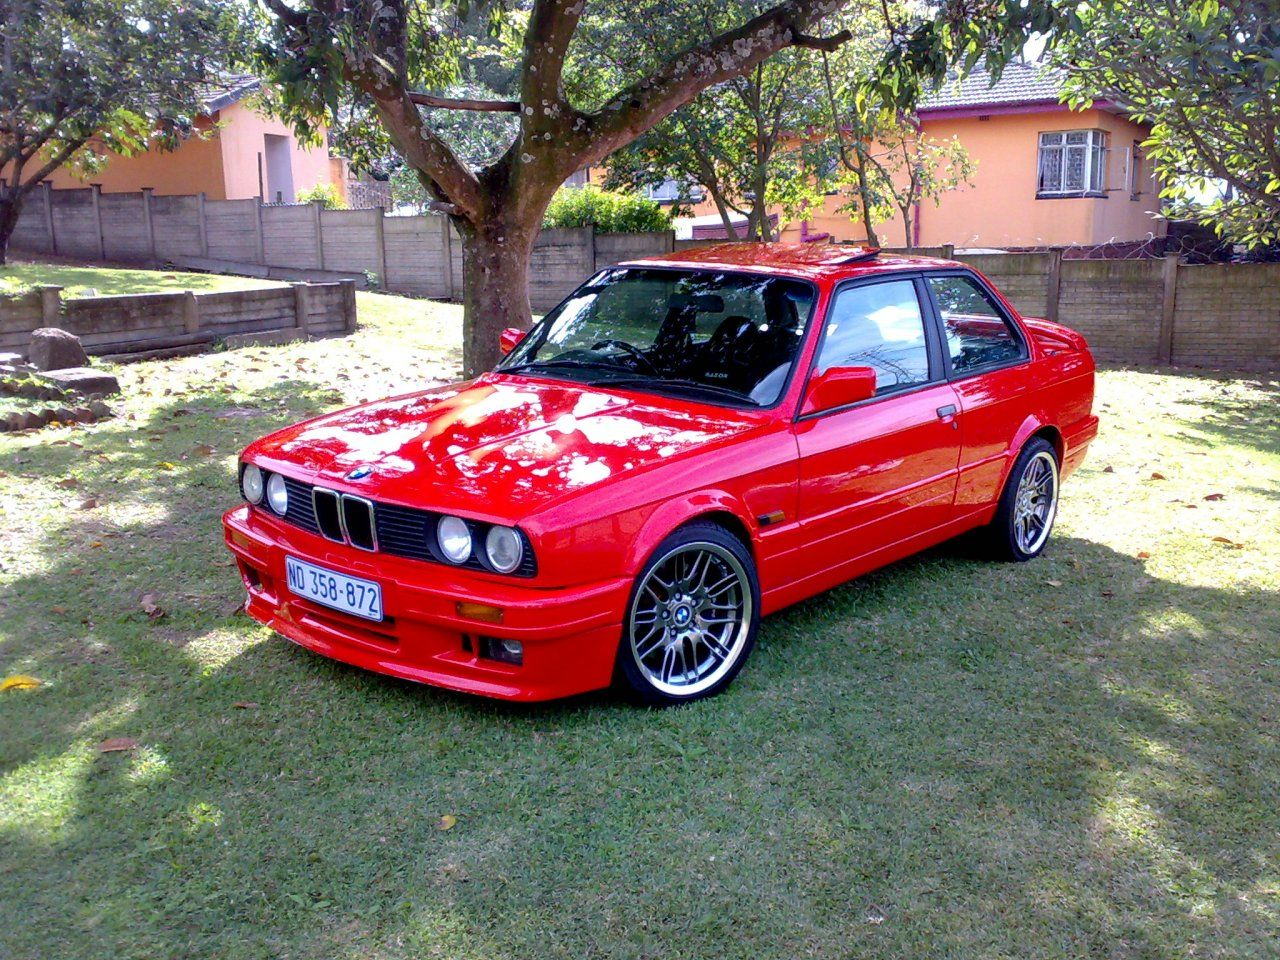 bmw e30 325is bmw 325 is for the love of the beast pinterest bmw e30 e30 and bmw. Black Bedroom Furniture Sets. Home Design Ideas